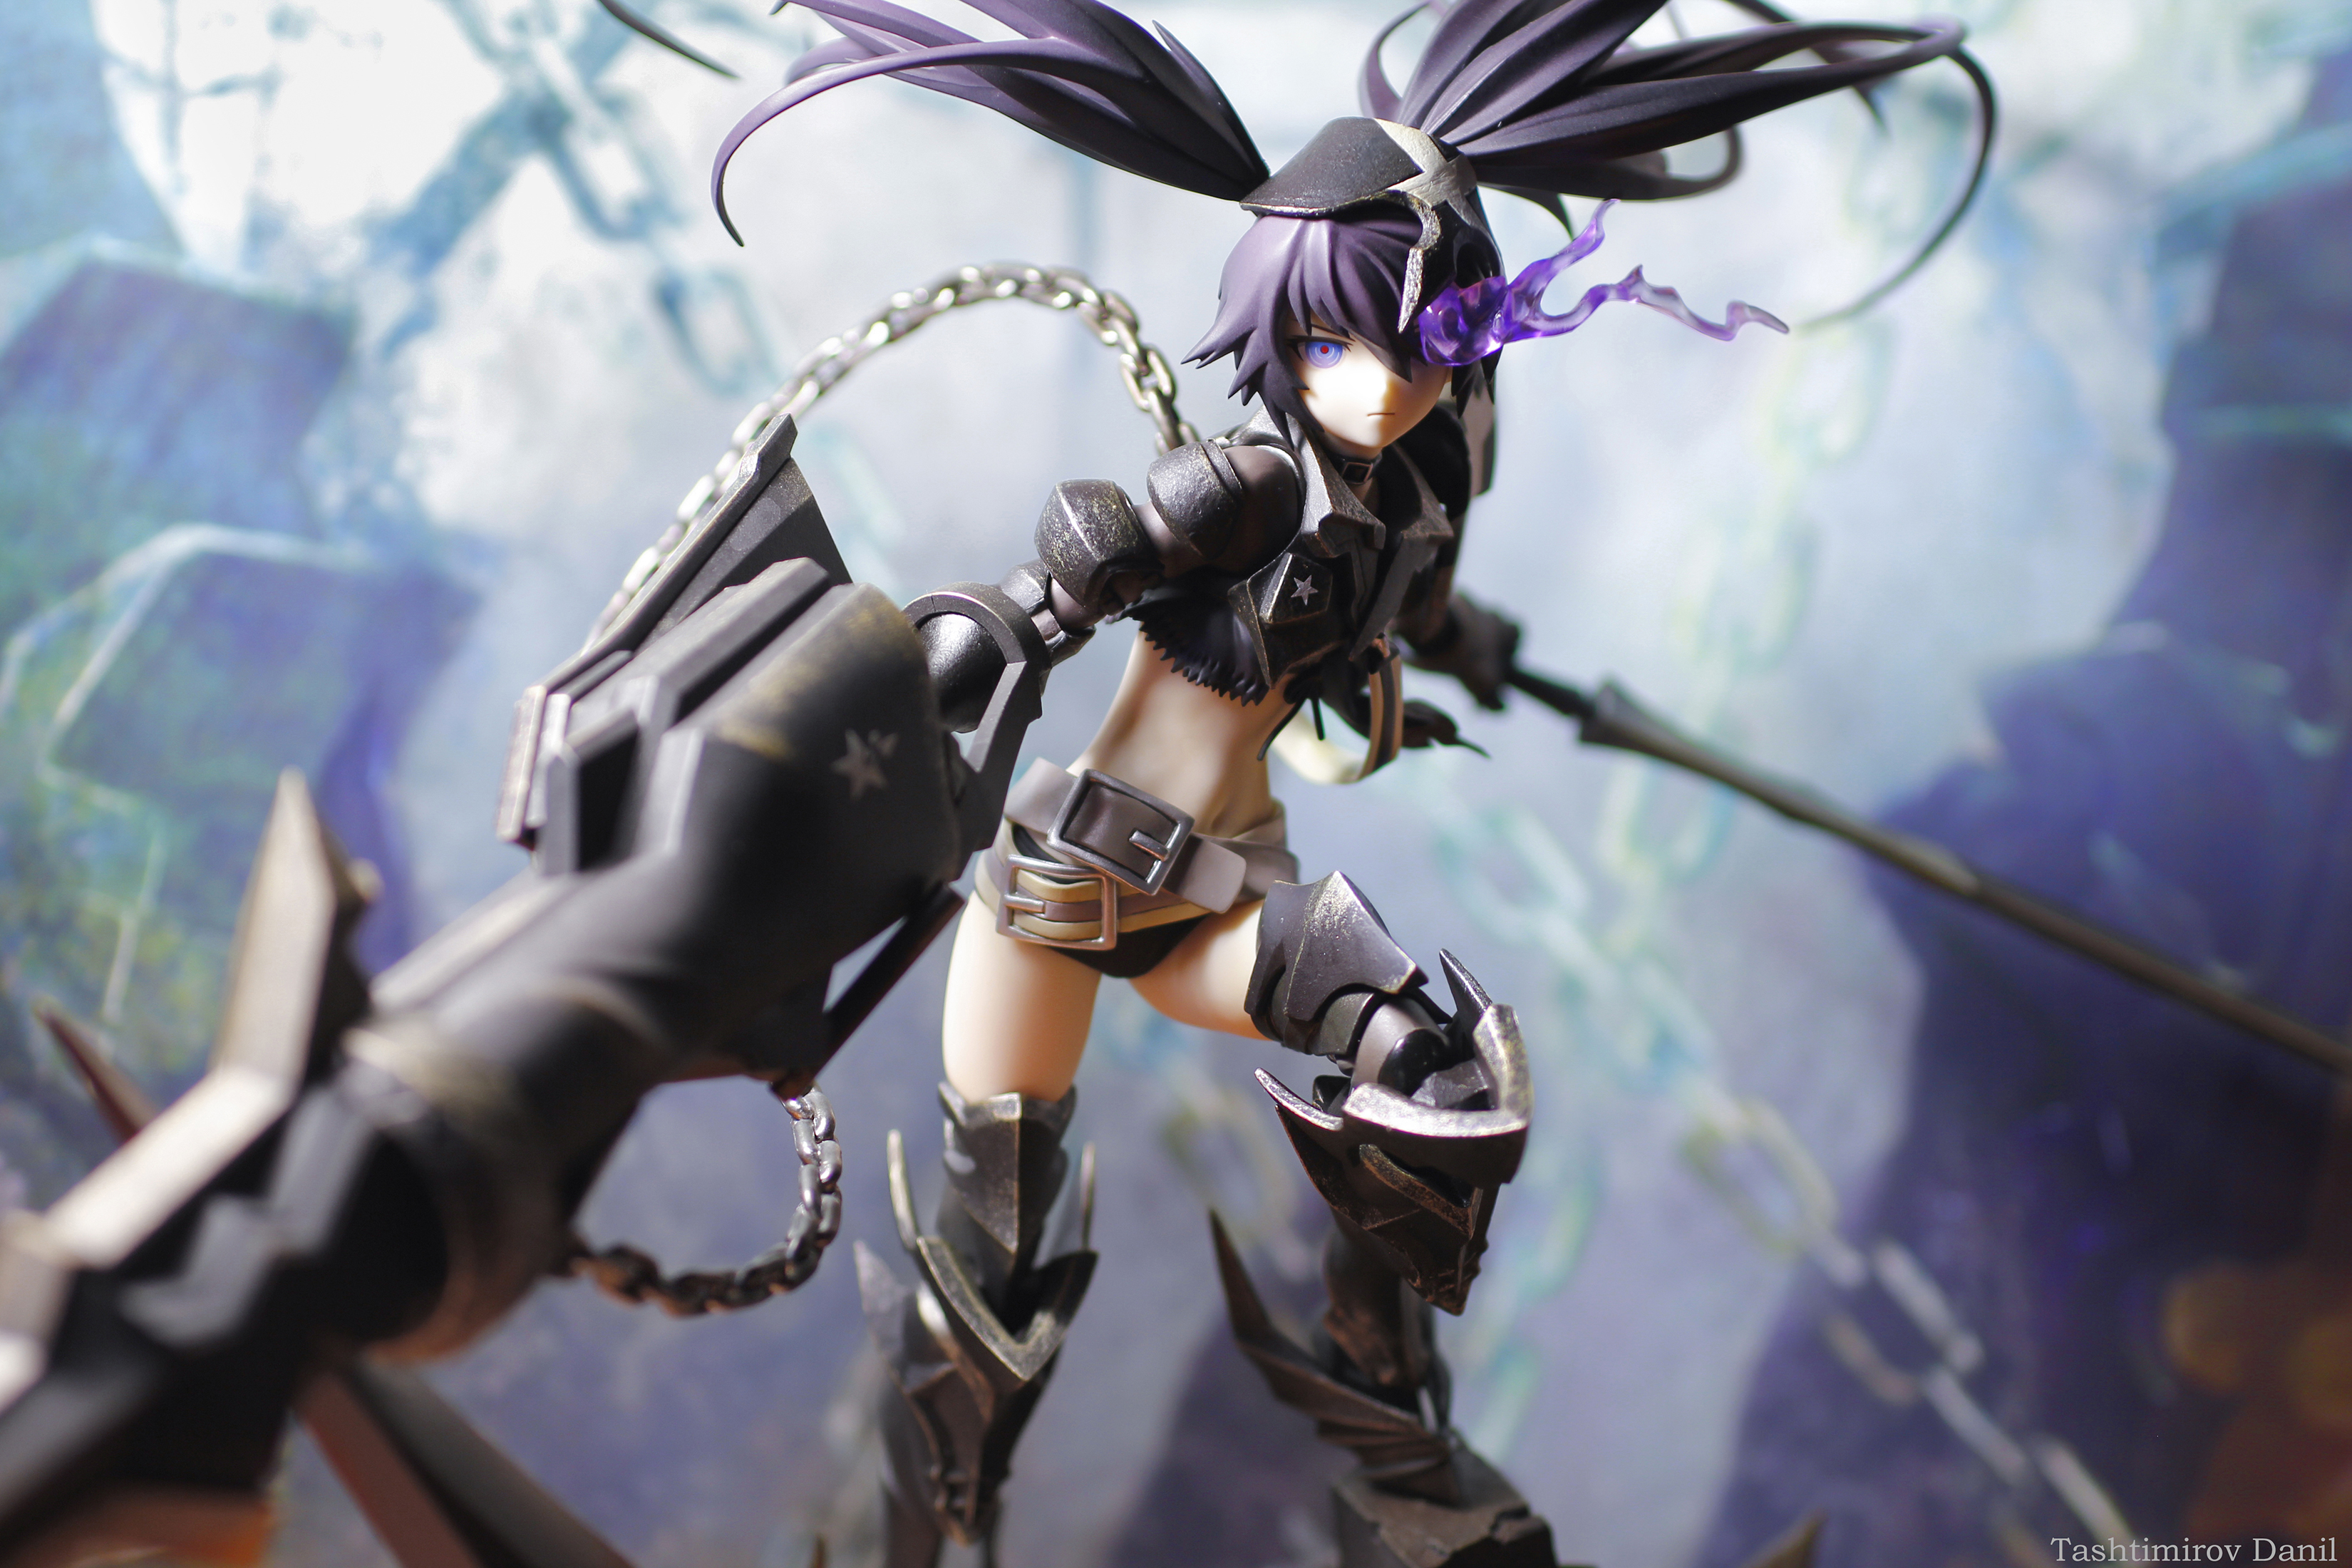 huke good_smile_company black_★_rock_shooter kiking insane_black_★_rock_shooter